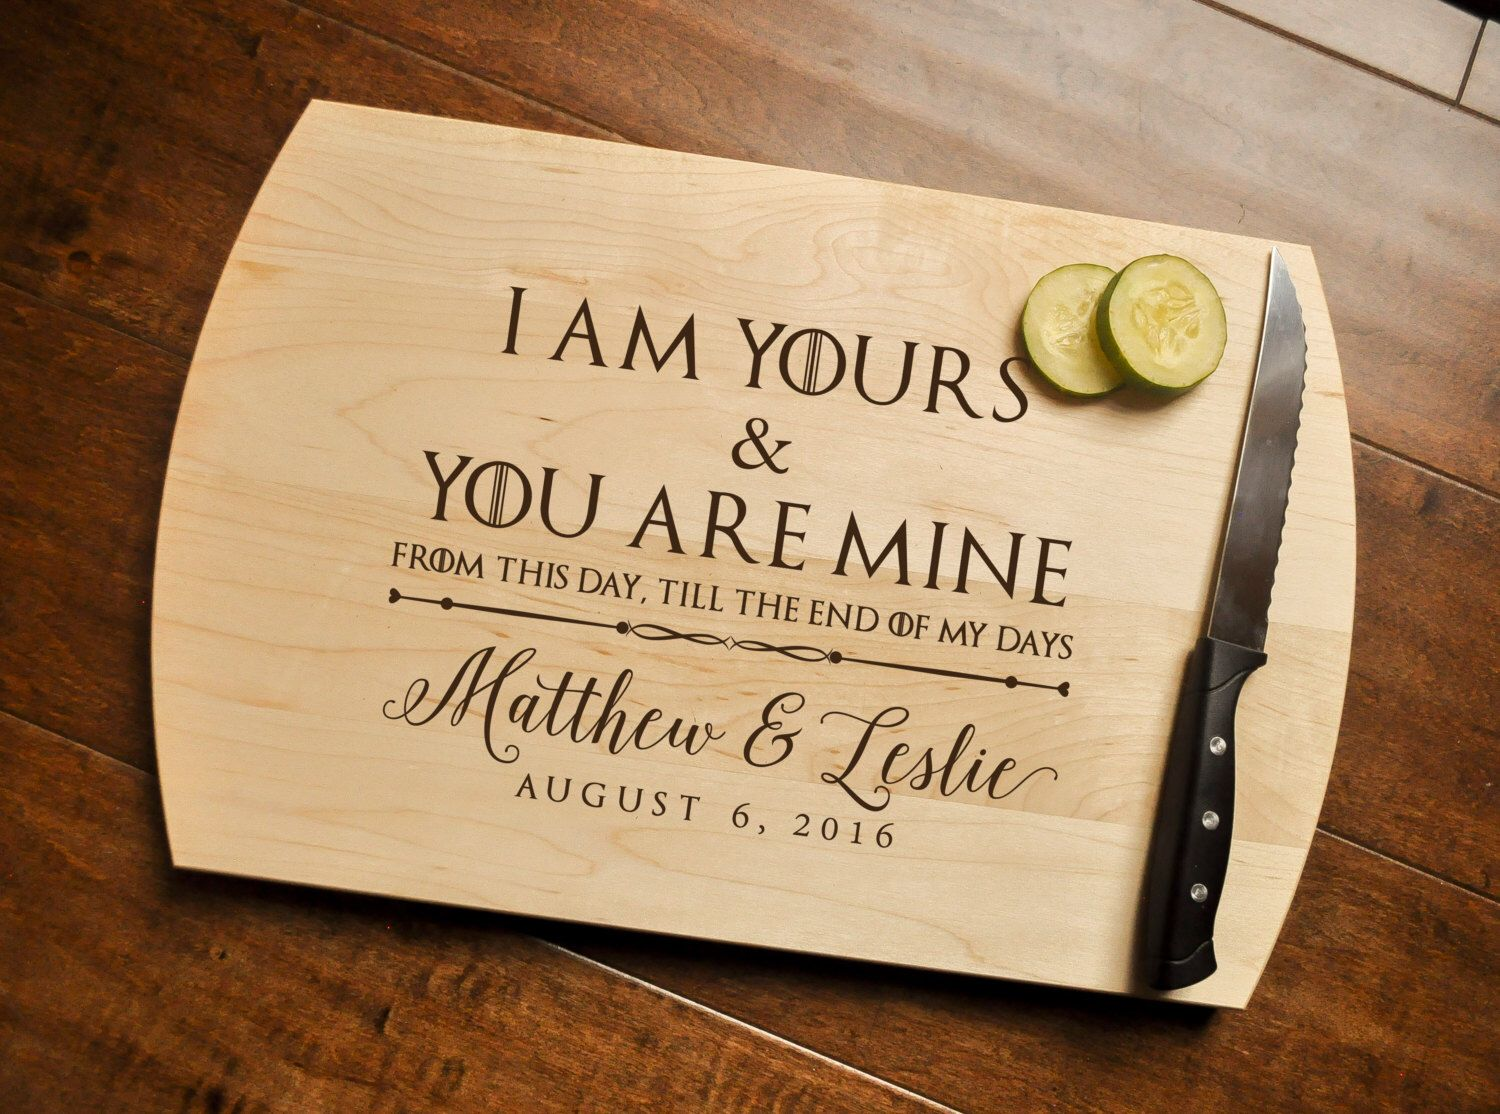 Of Thrones Cutting Board Engraved Got Wedding Vows